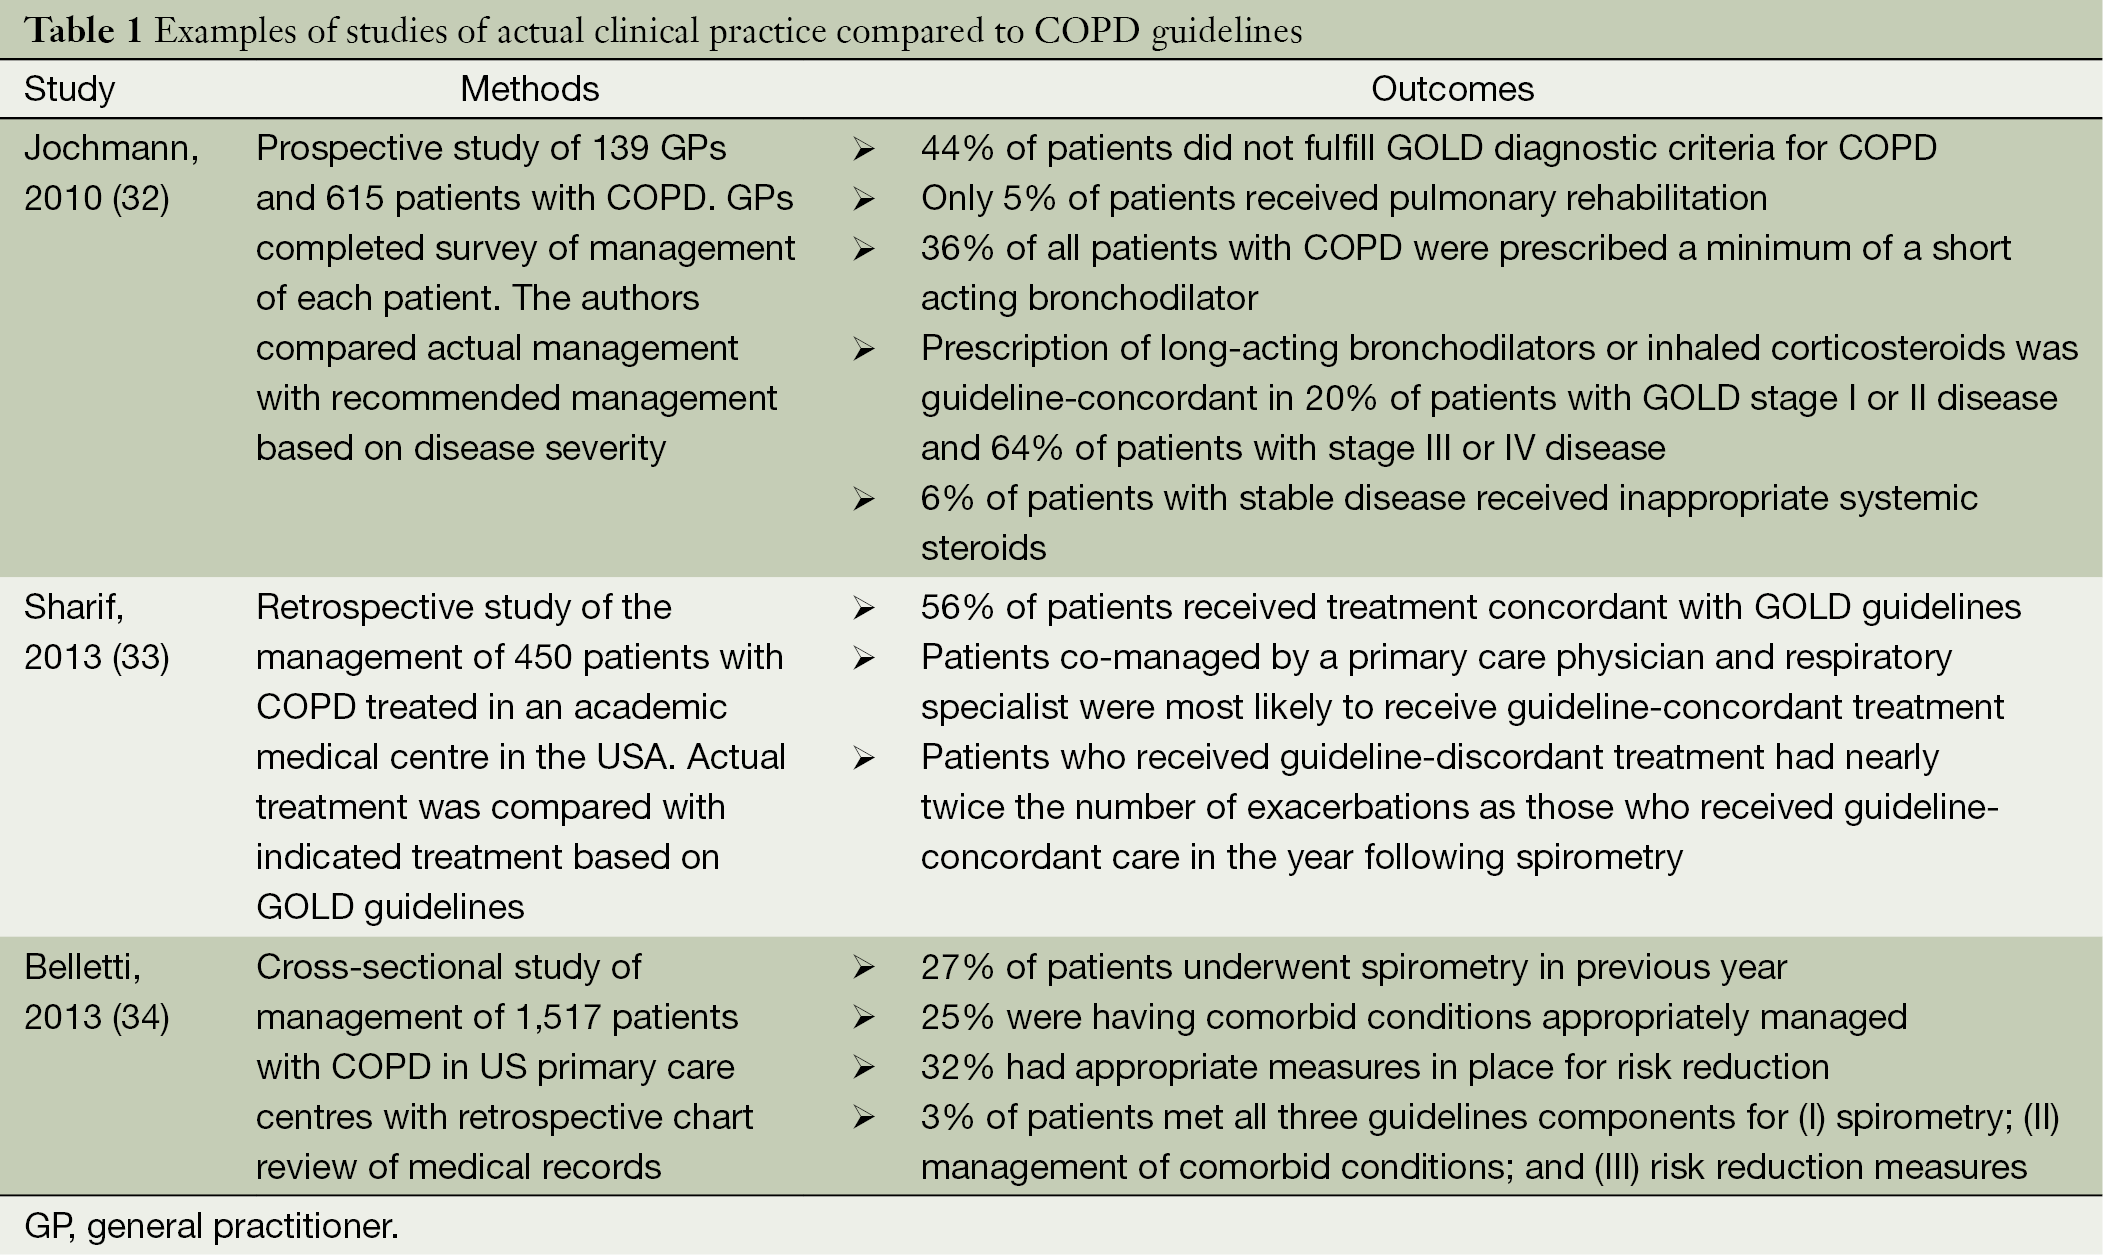 COPD Case Study | Alice Ko - Academia.edu